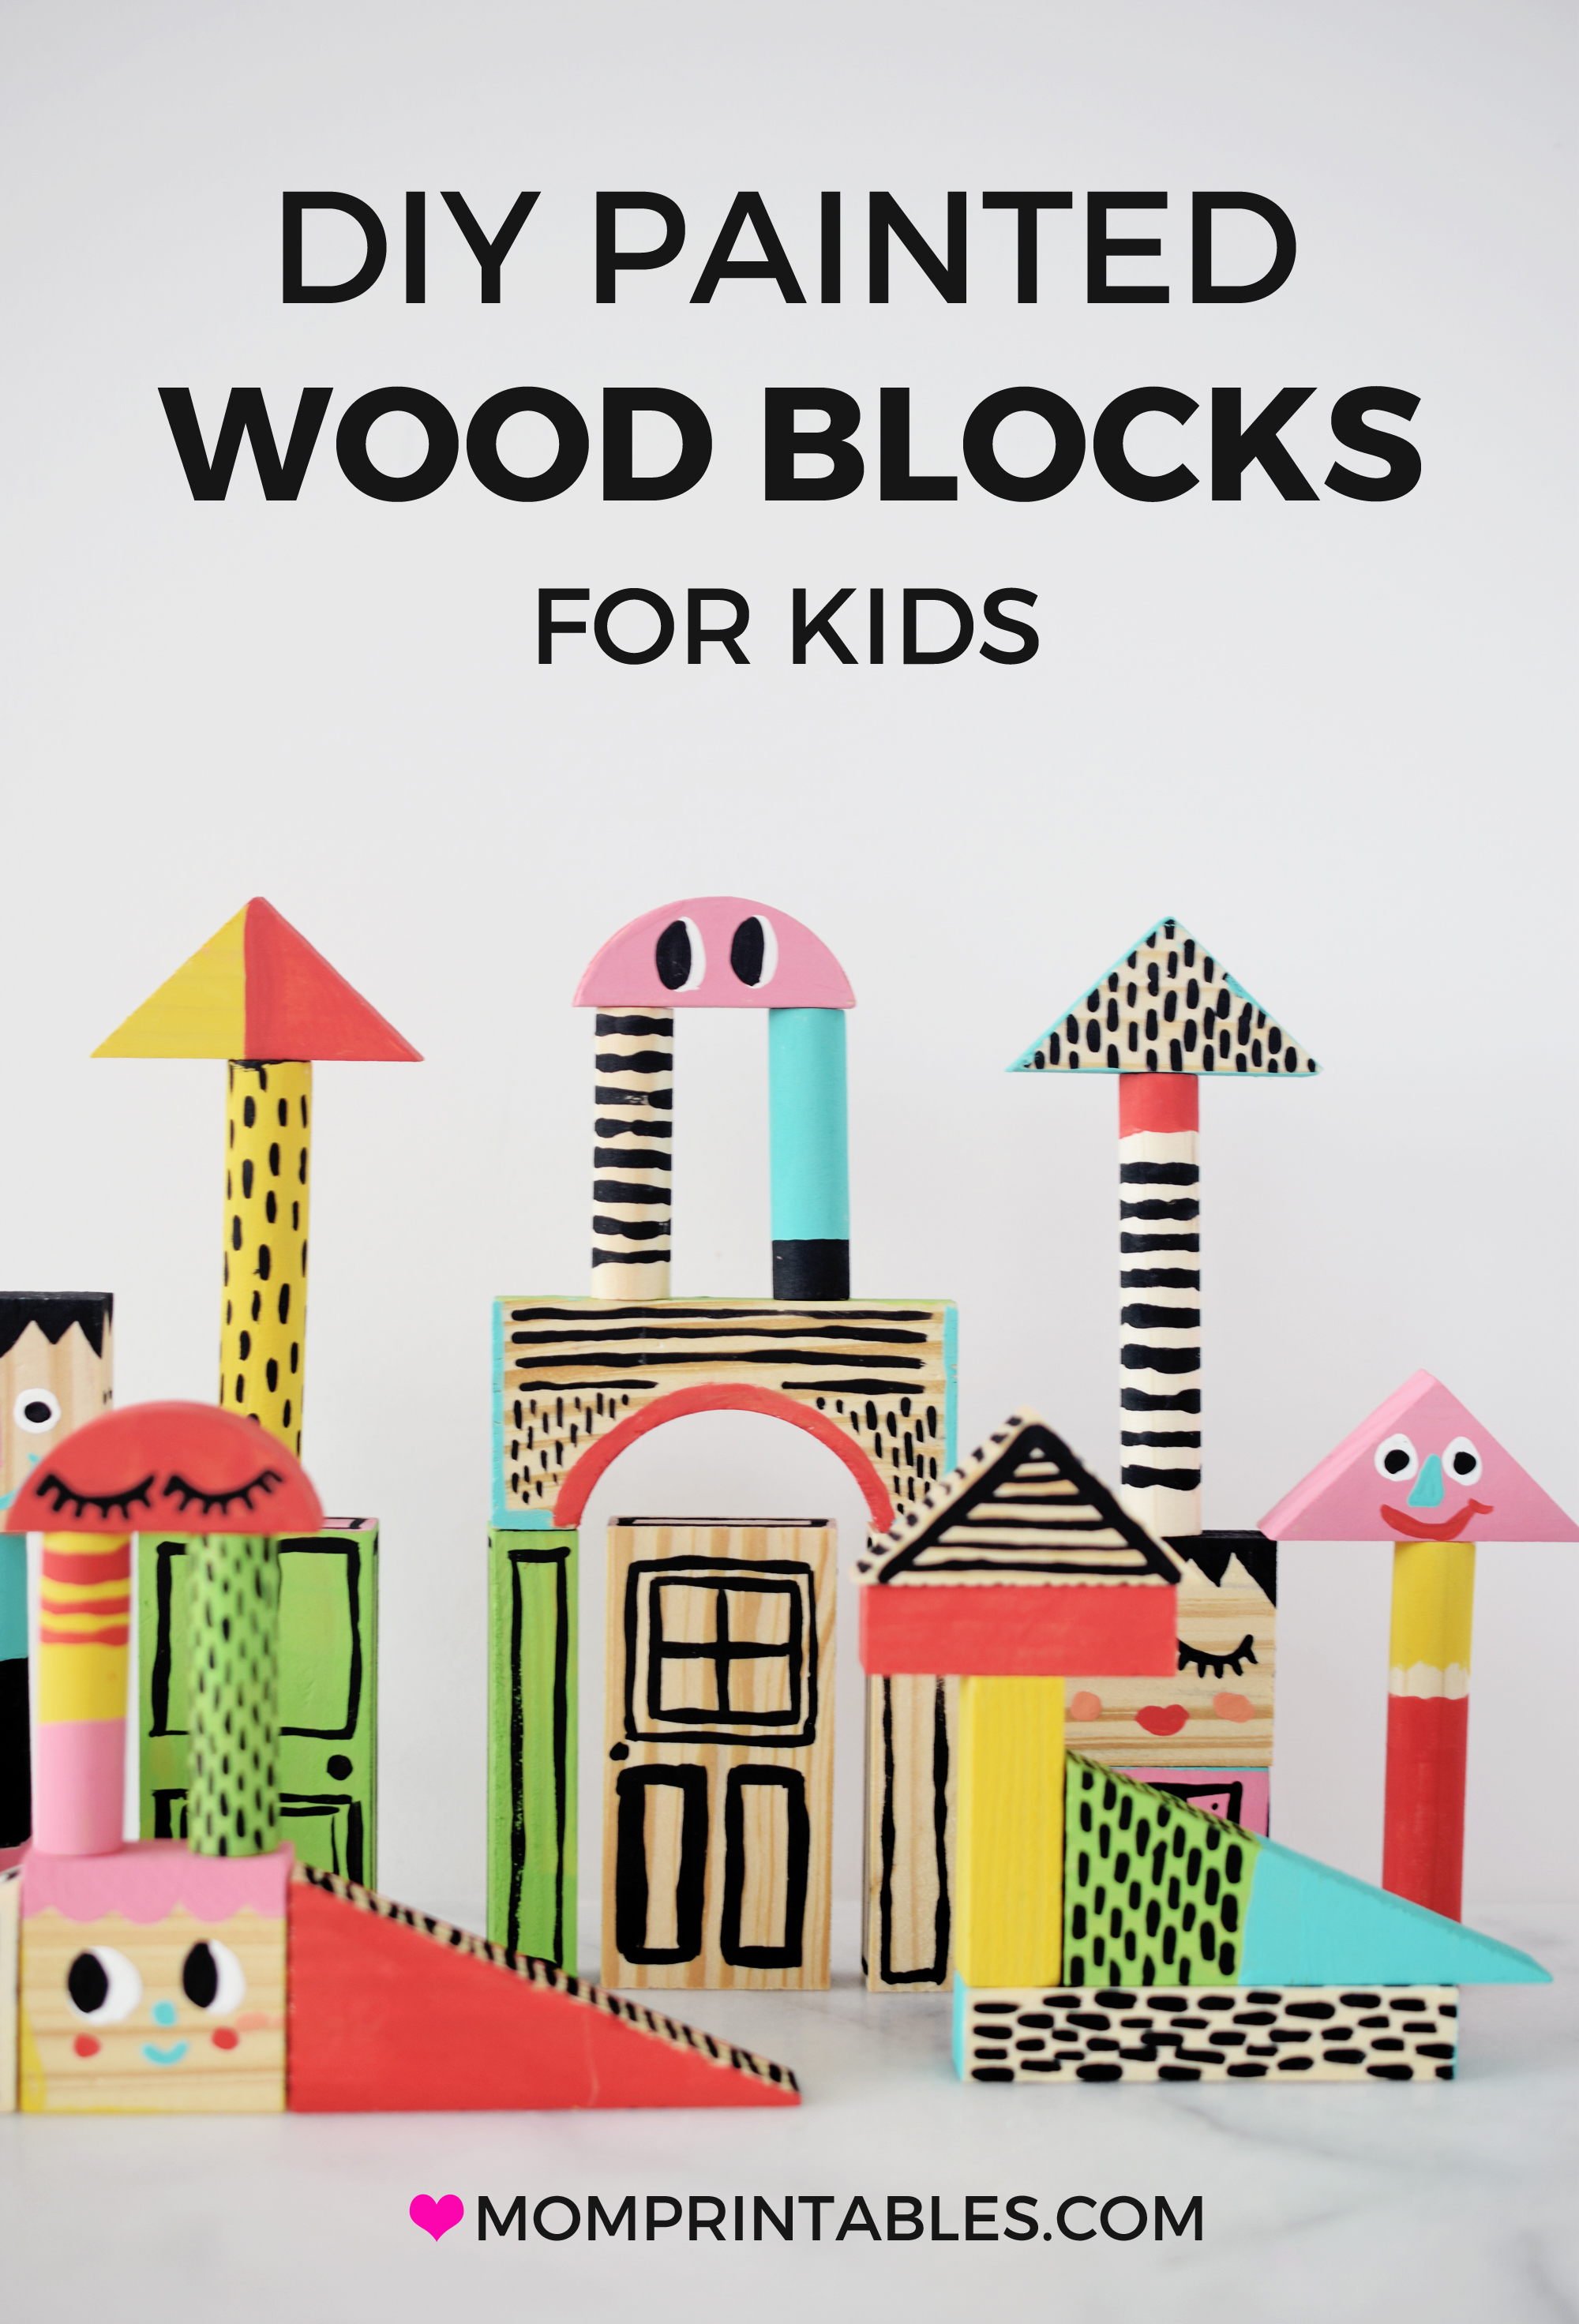 Toy blocks DIY for kids | ideas | for kids | fun | children | plays | wood | Christmas gifts | painted #kidscraft #toyblocks #paintedwoodblocks #diytoys #kids